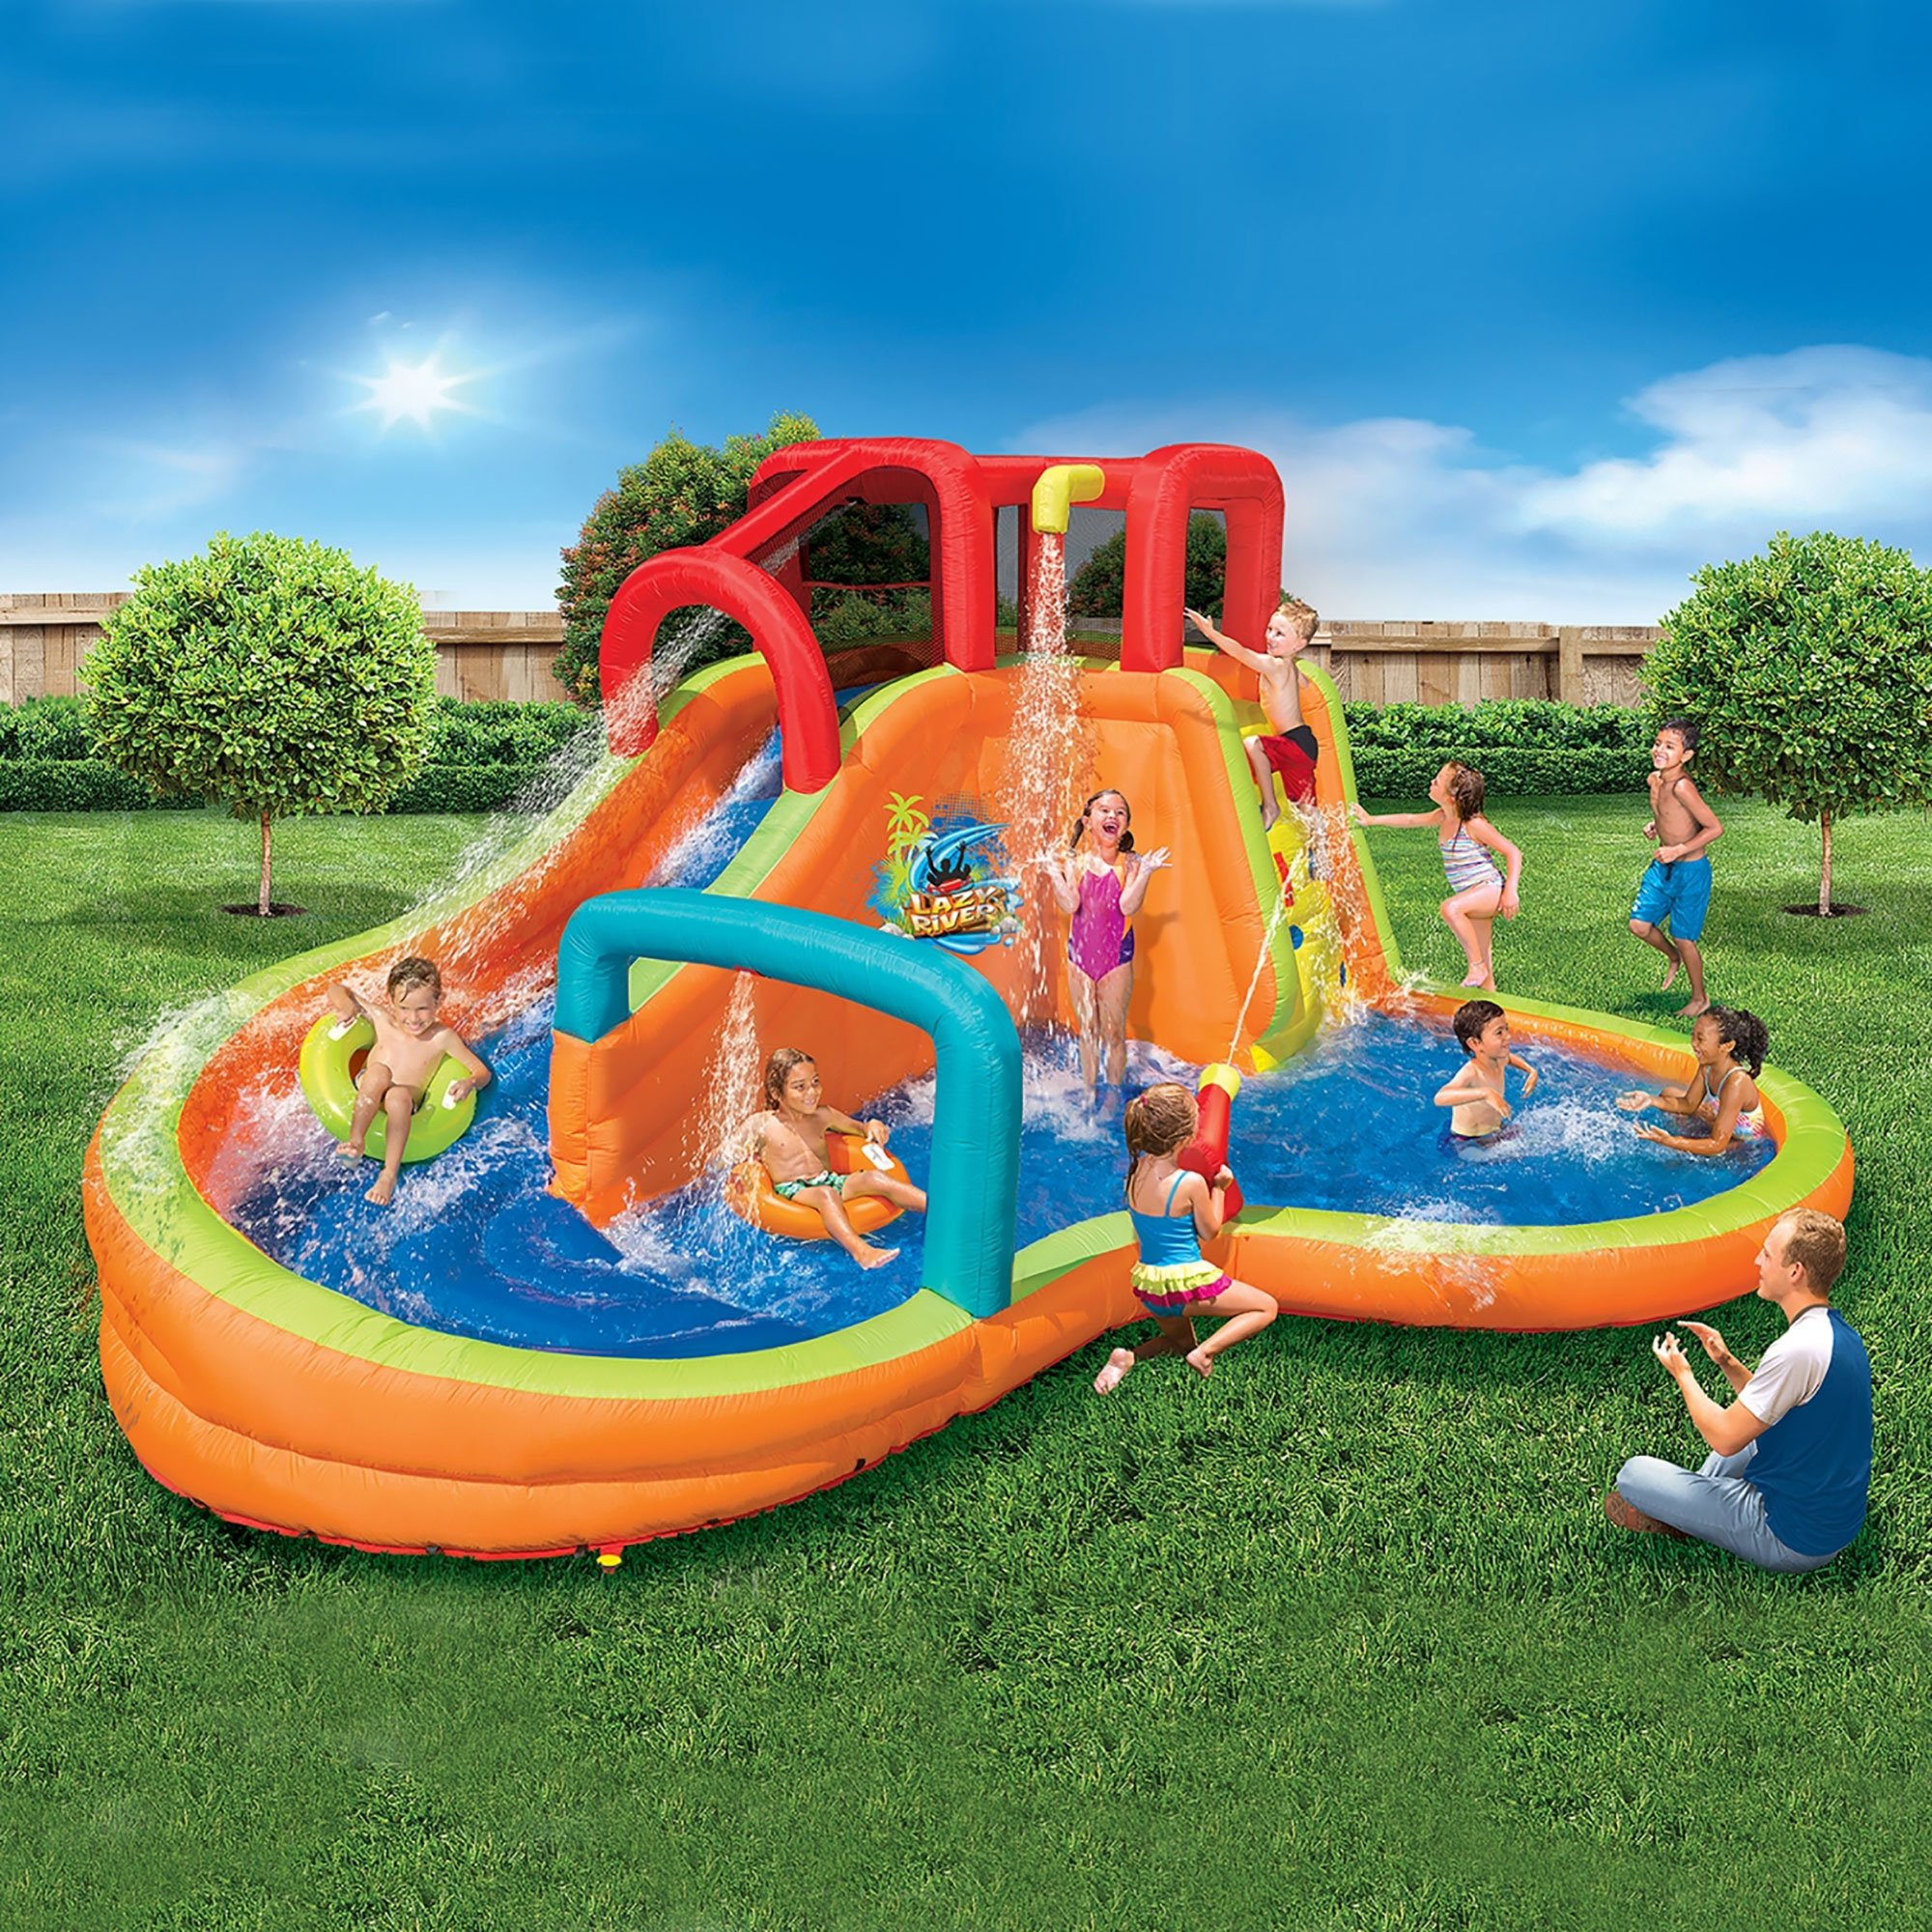 Banzai Kids Inflatable Outdoor Lazy River Adventure Water